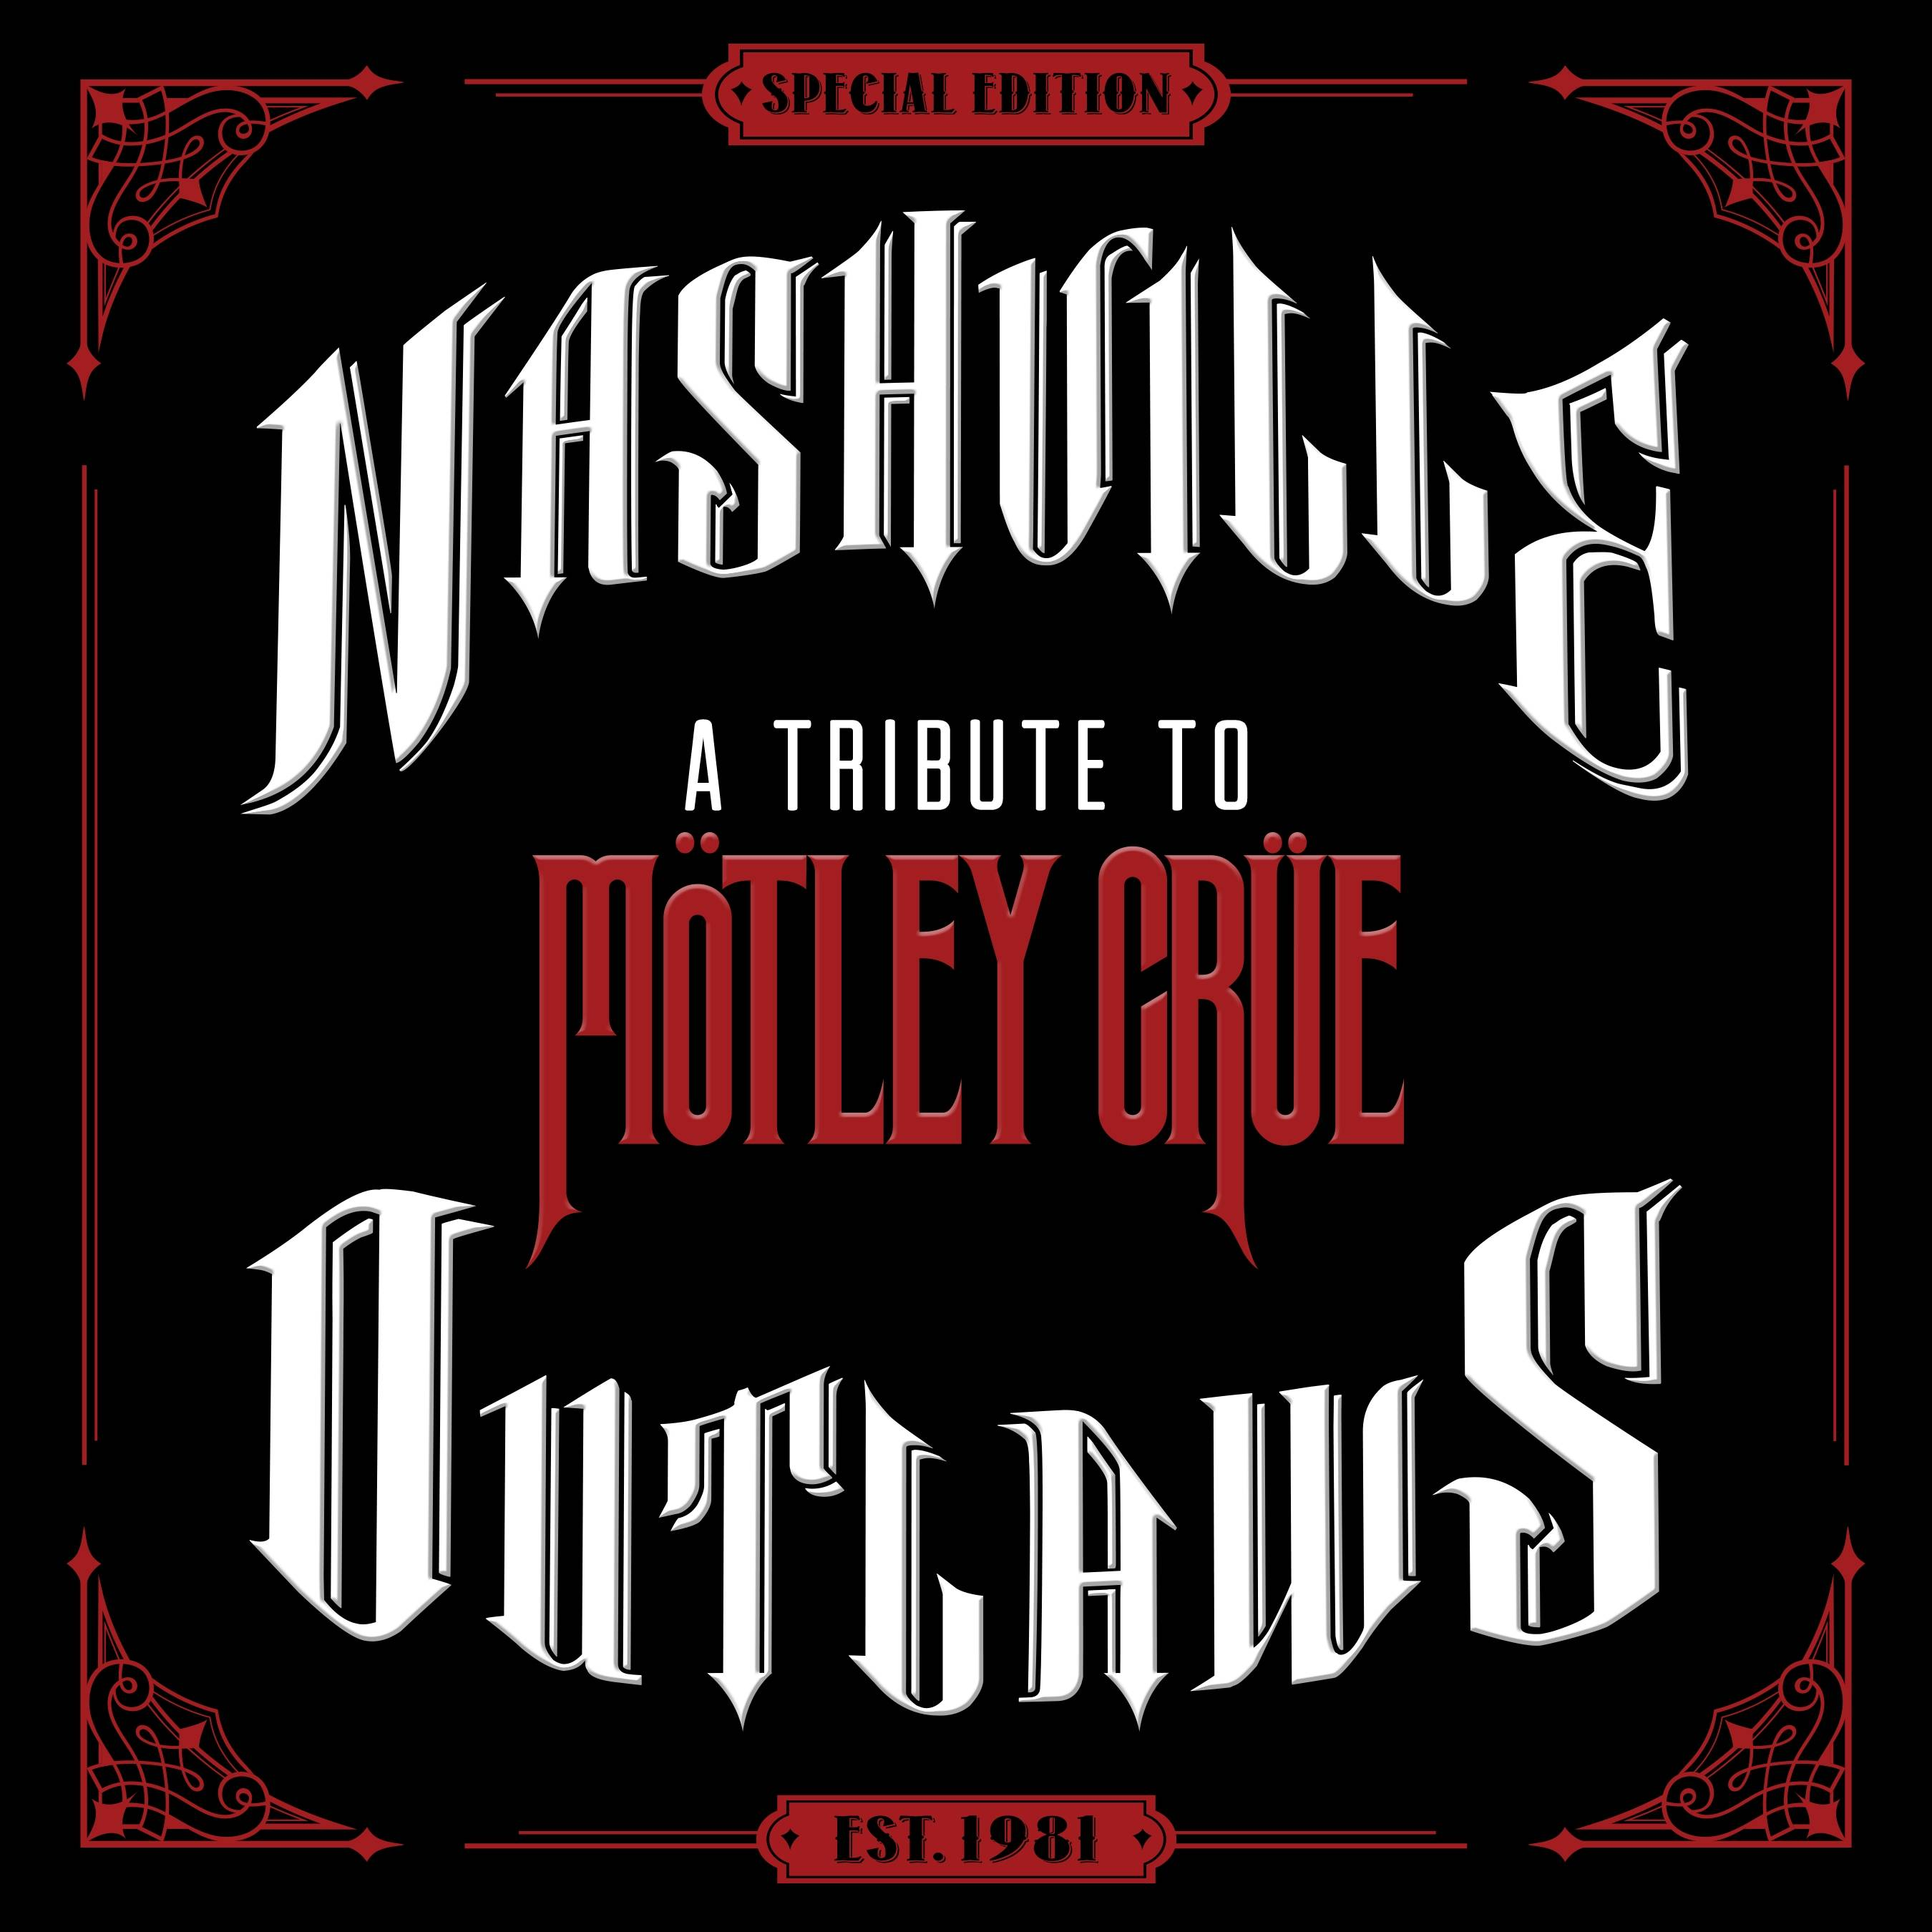 """A Tribute to Motley Crue"" by Nashville Outlaws"